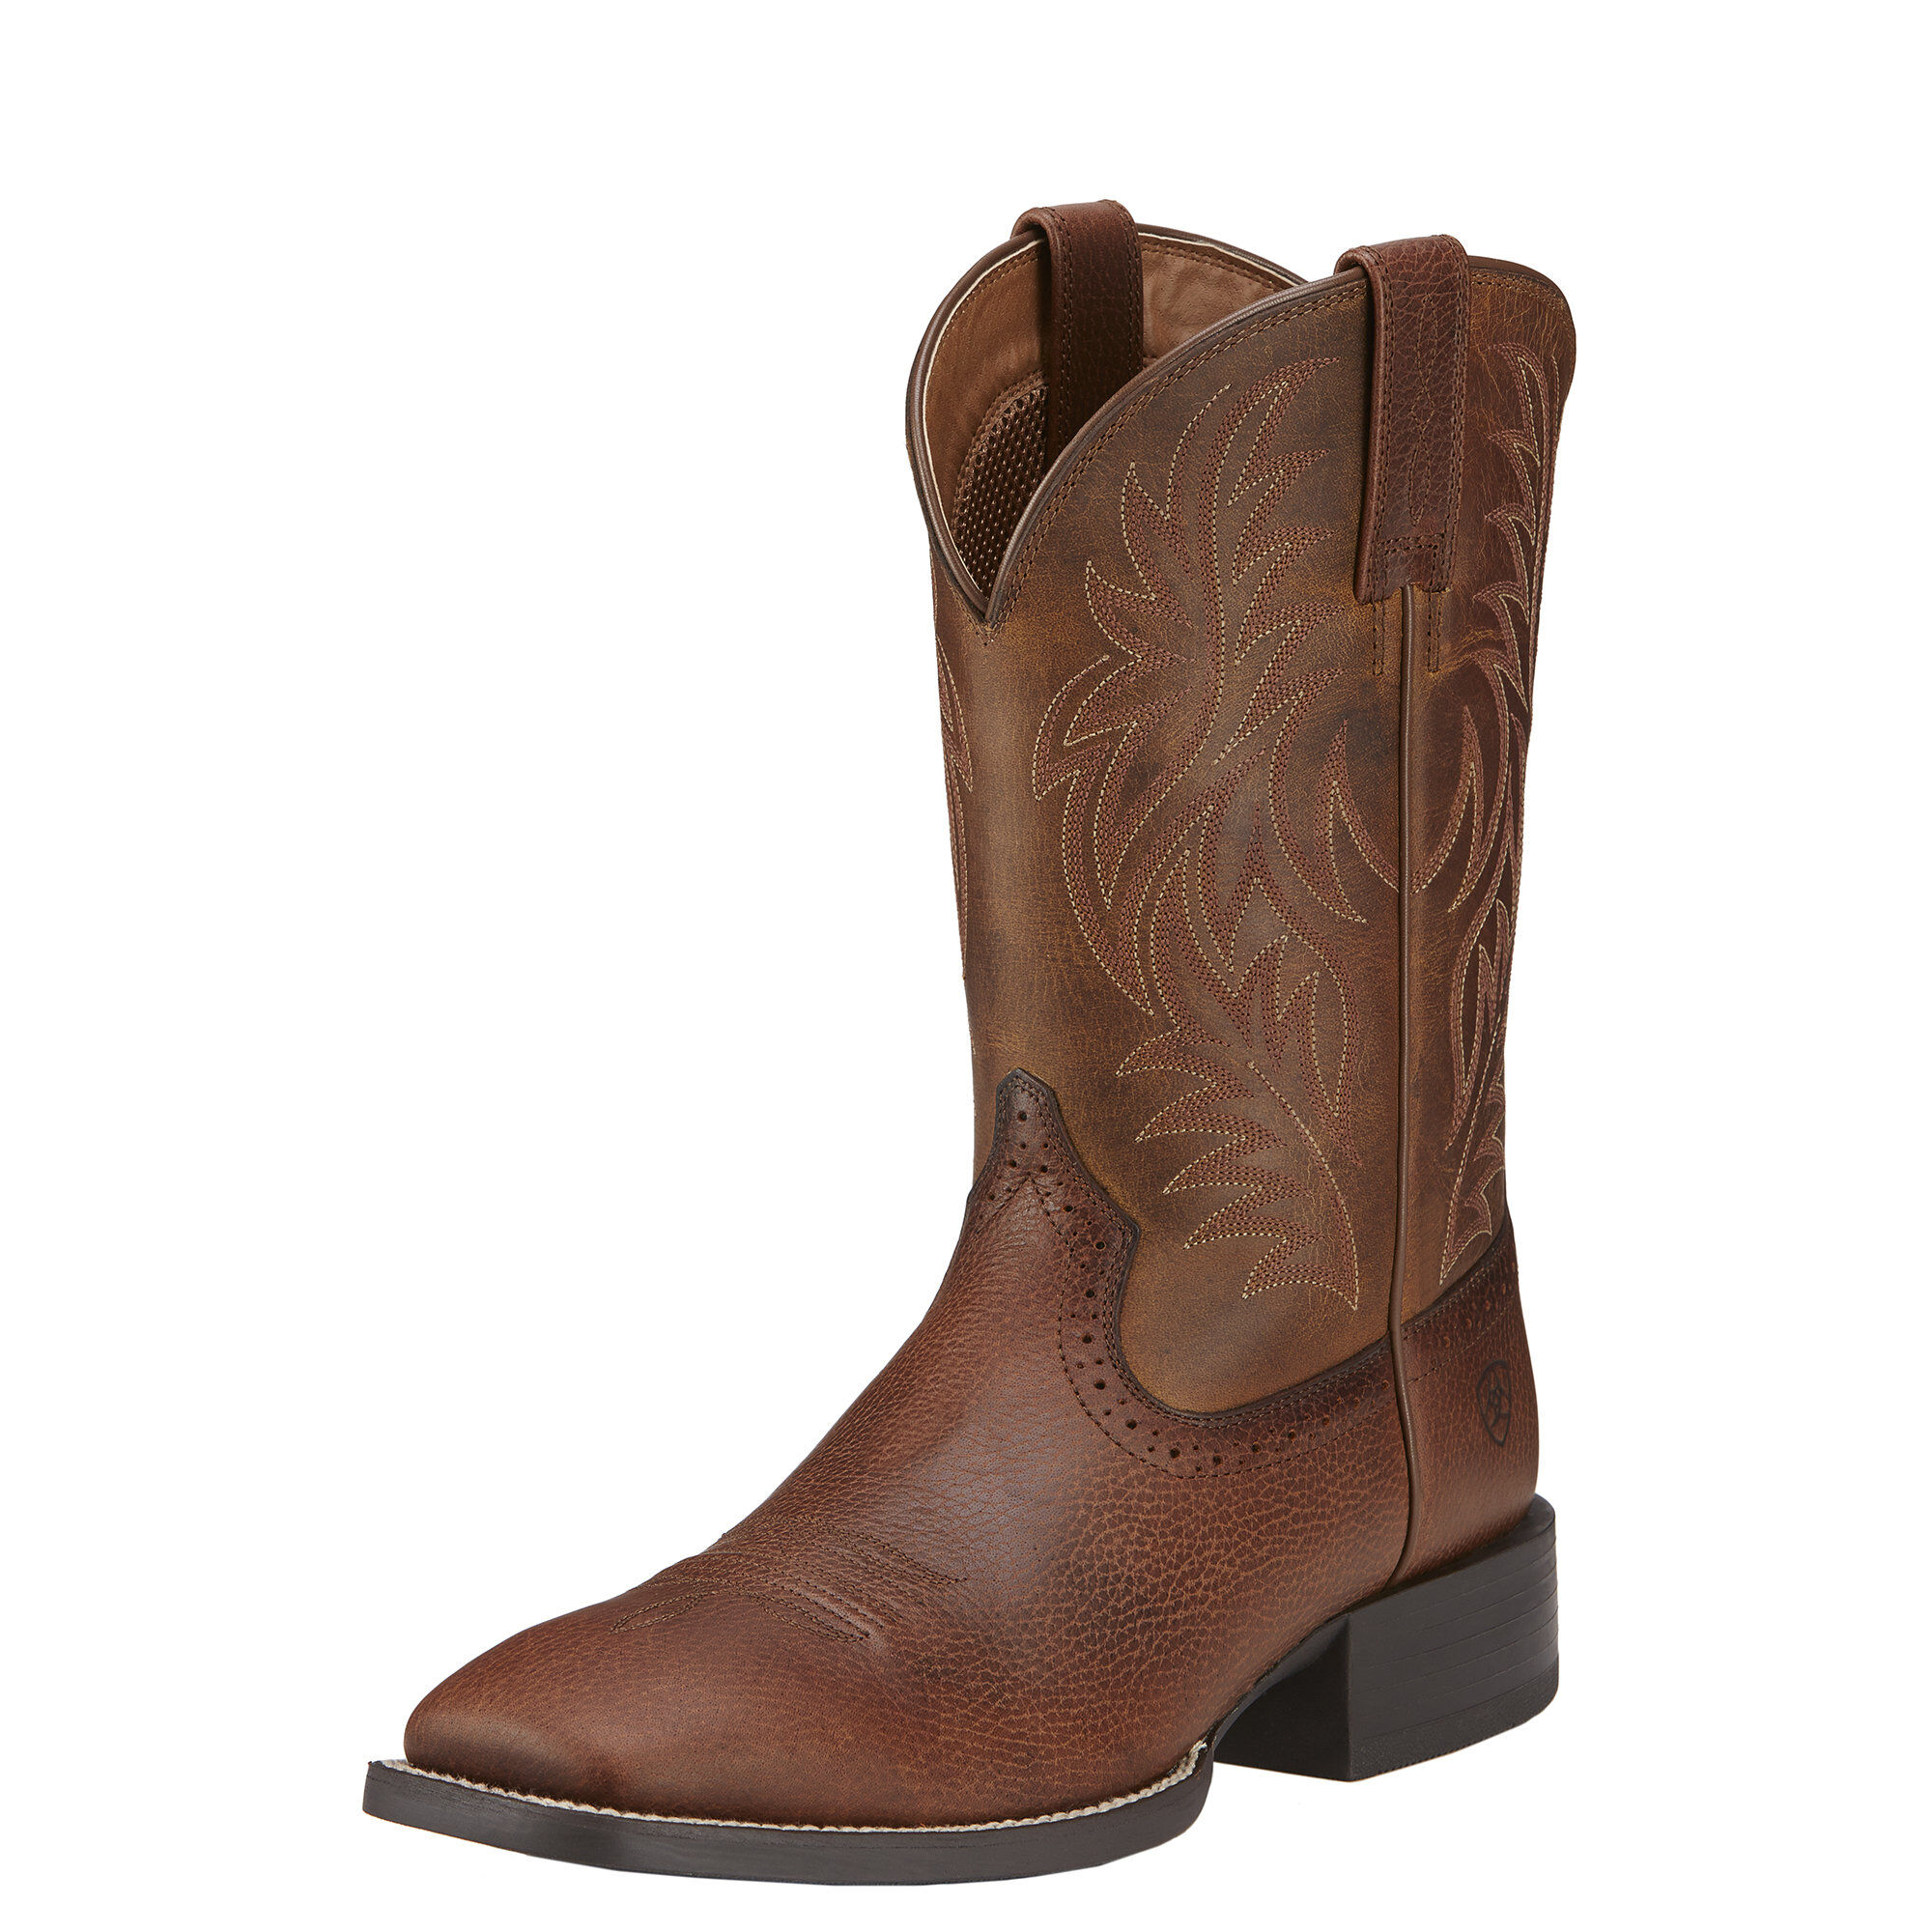 Clothing, Shoes & Accessories Men's Black Work Western Cowboy Boots Plain Real Leather Pull On Square Toe Boots